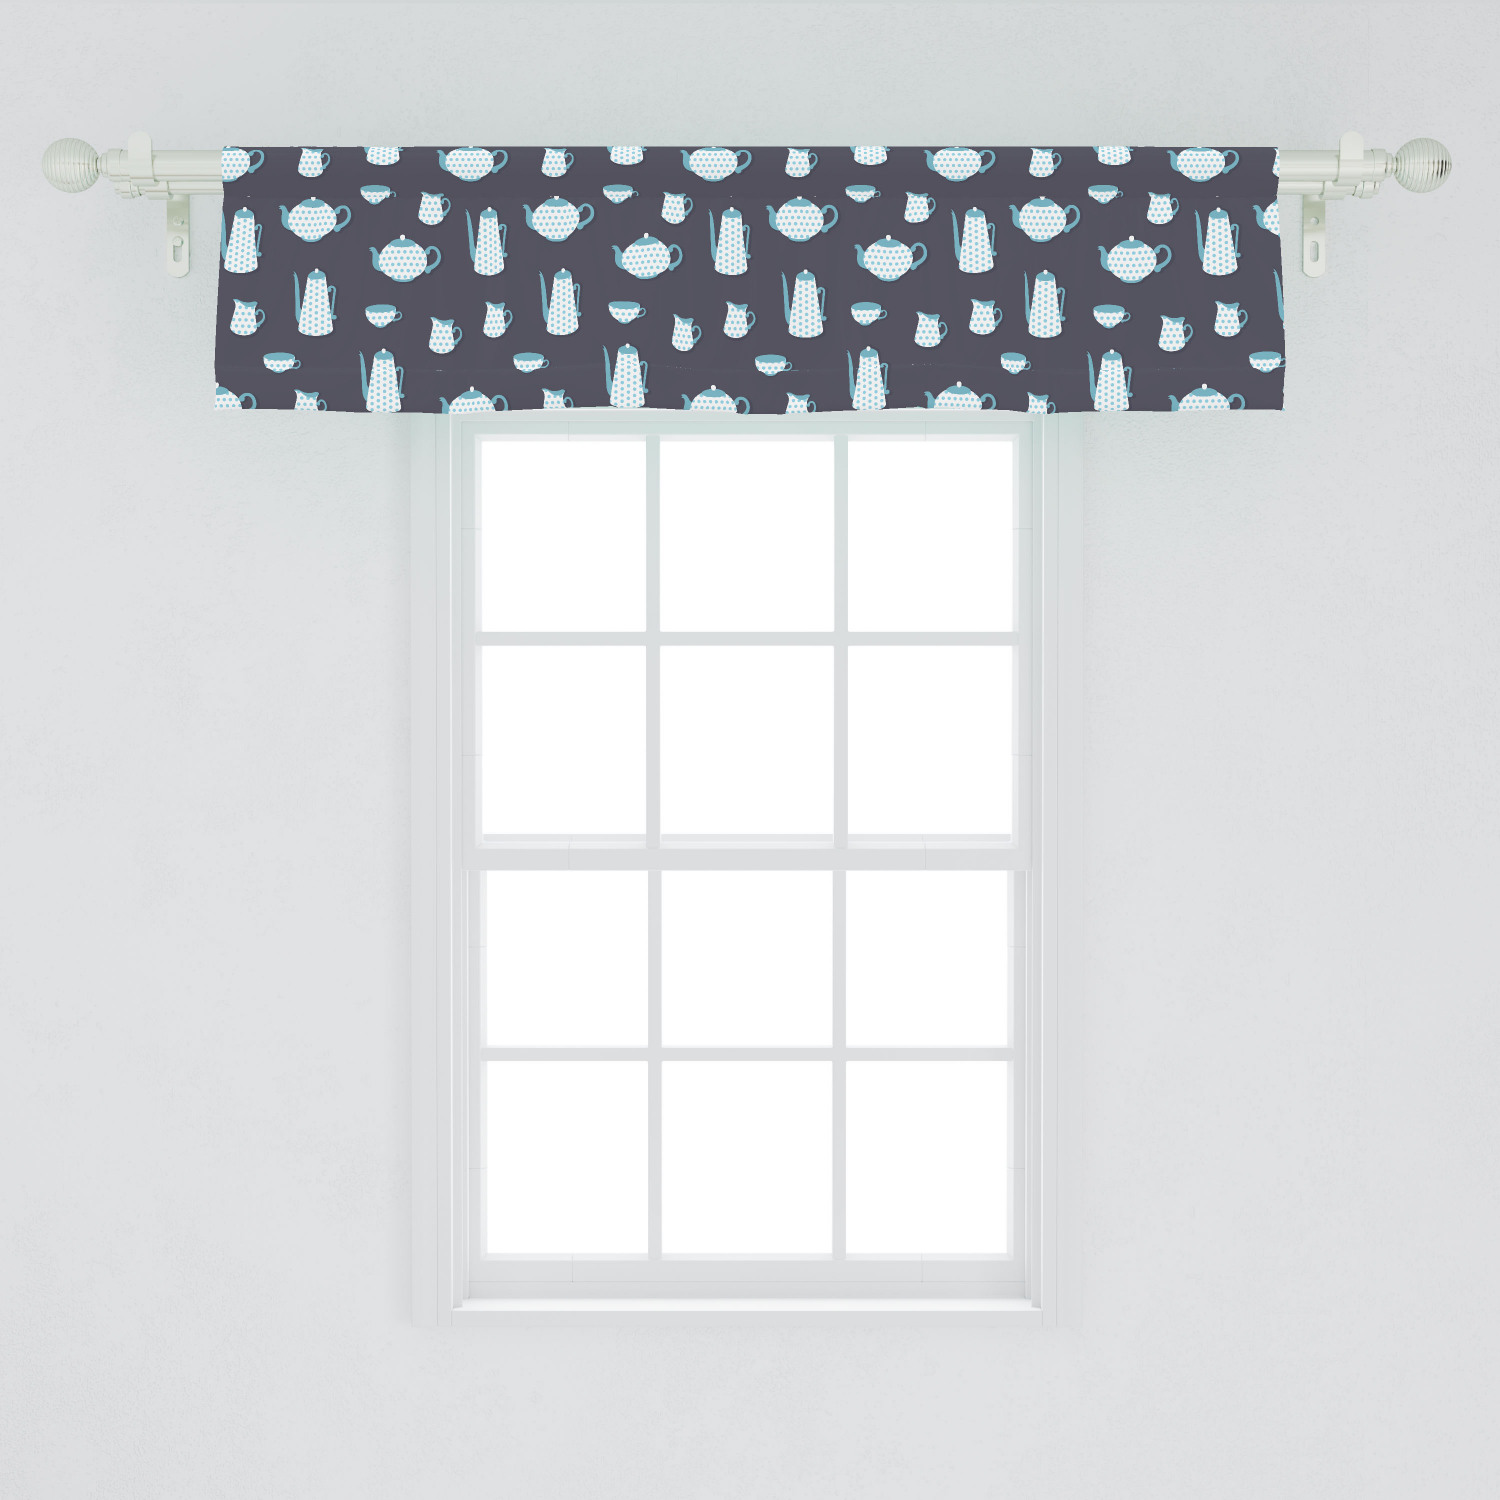 Handmade Products Mickey Mouse Black White Polka Dot Bedroom Window Valance Topper Decor Treatment Home Kitchen